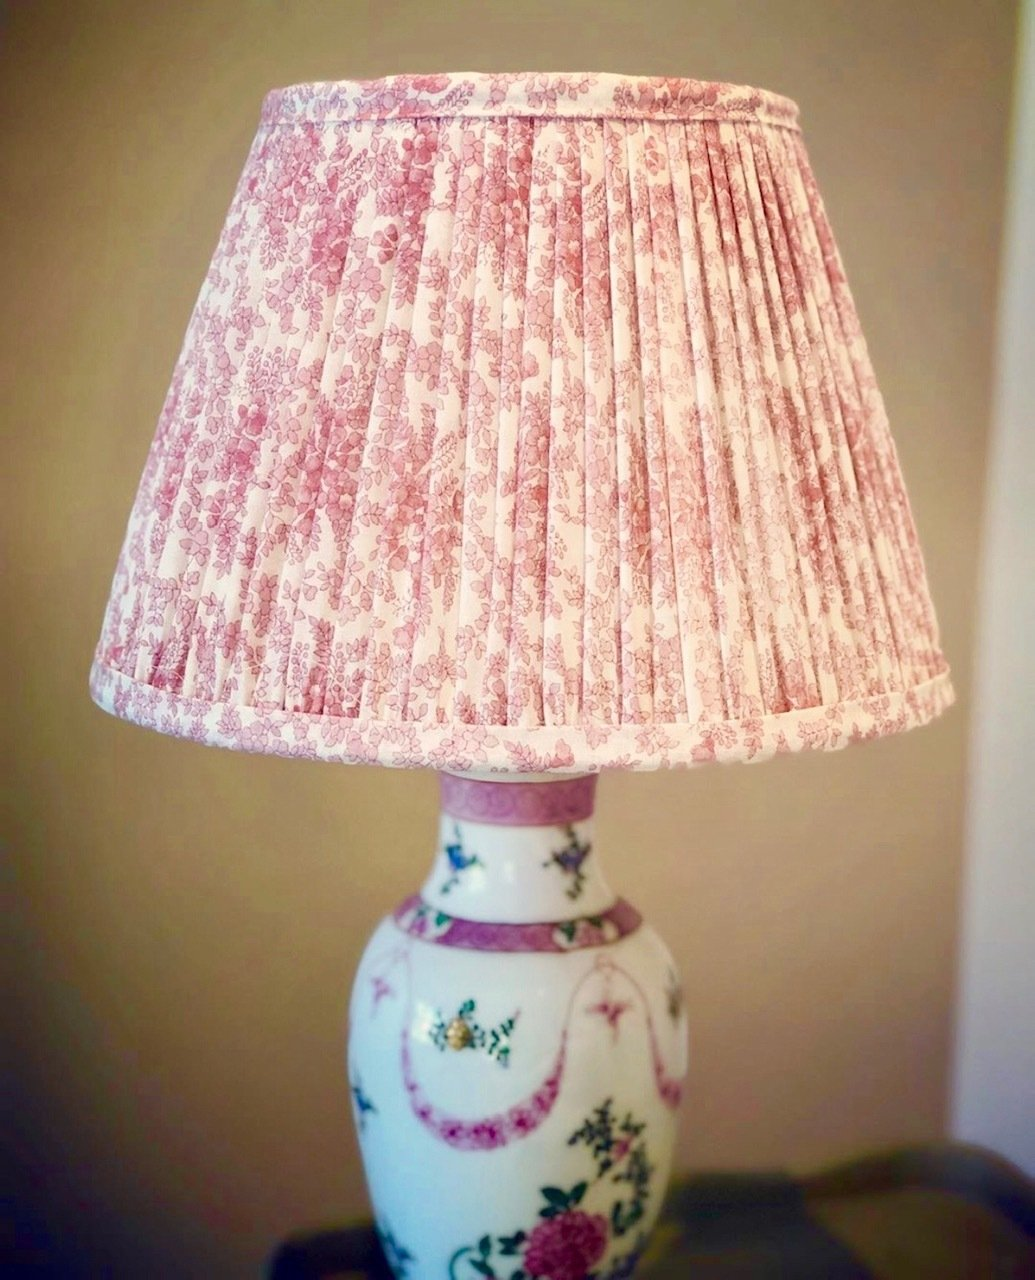 SOLD OUT Printed Liberty Print Cotton Lampshade - Pale Pink & White